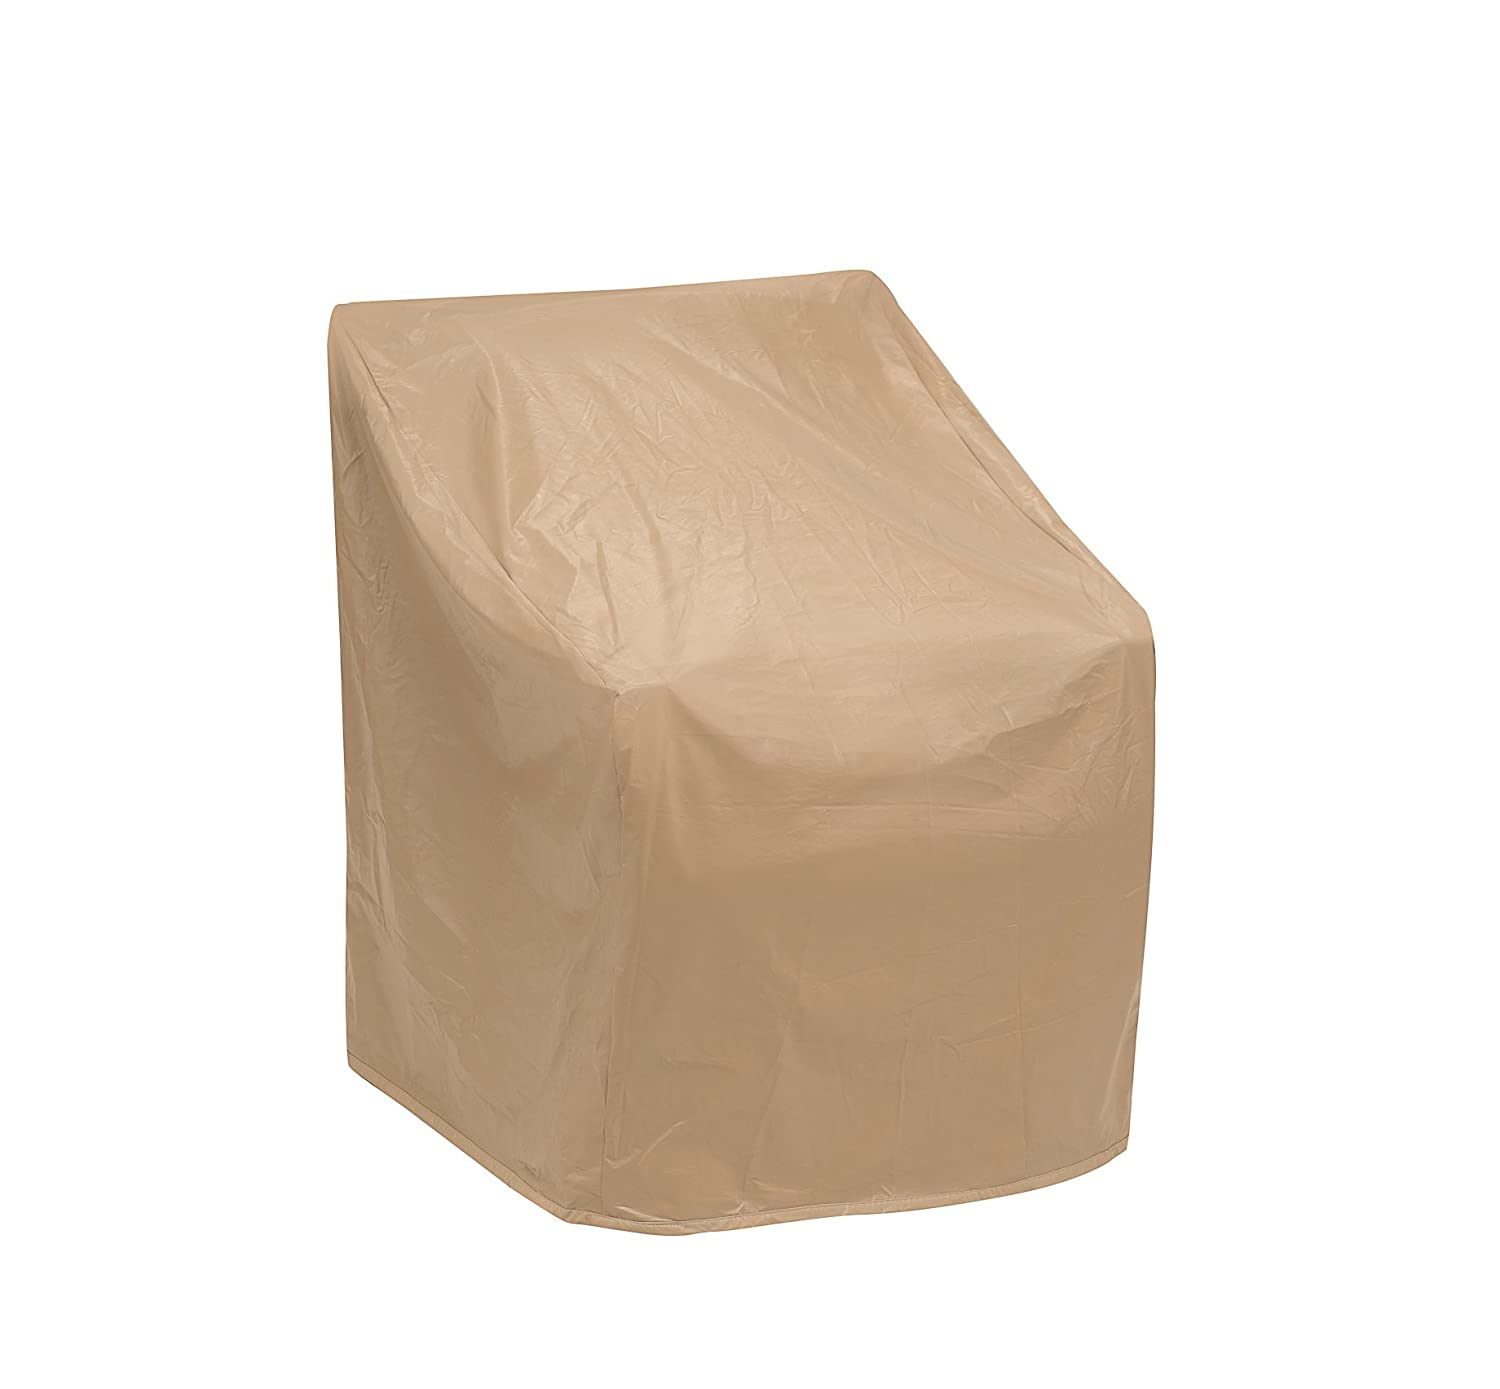 Protective Covers 1120-TN Oversized Wicker Chair Cover, Tan